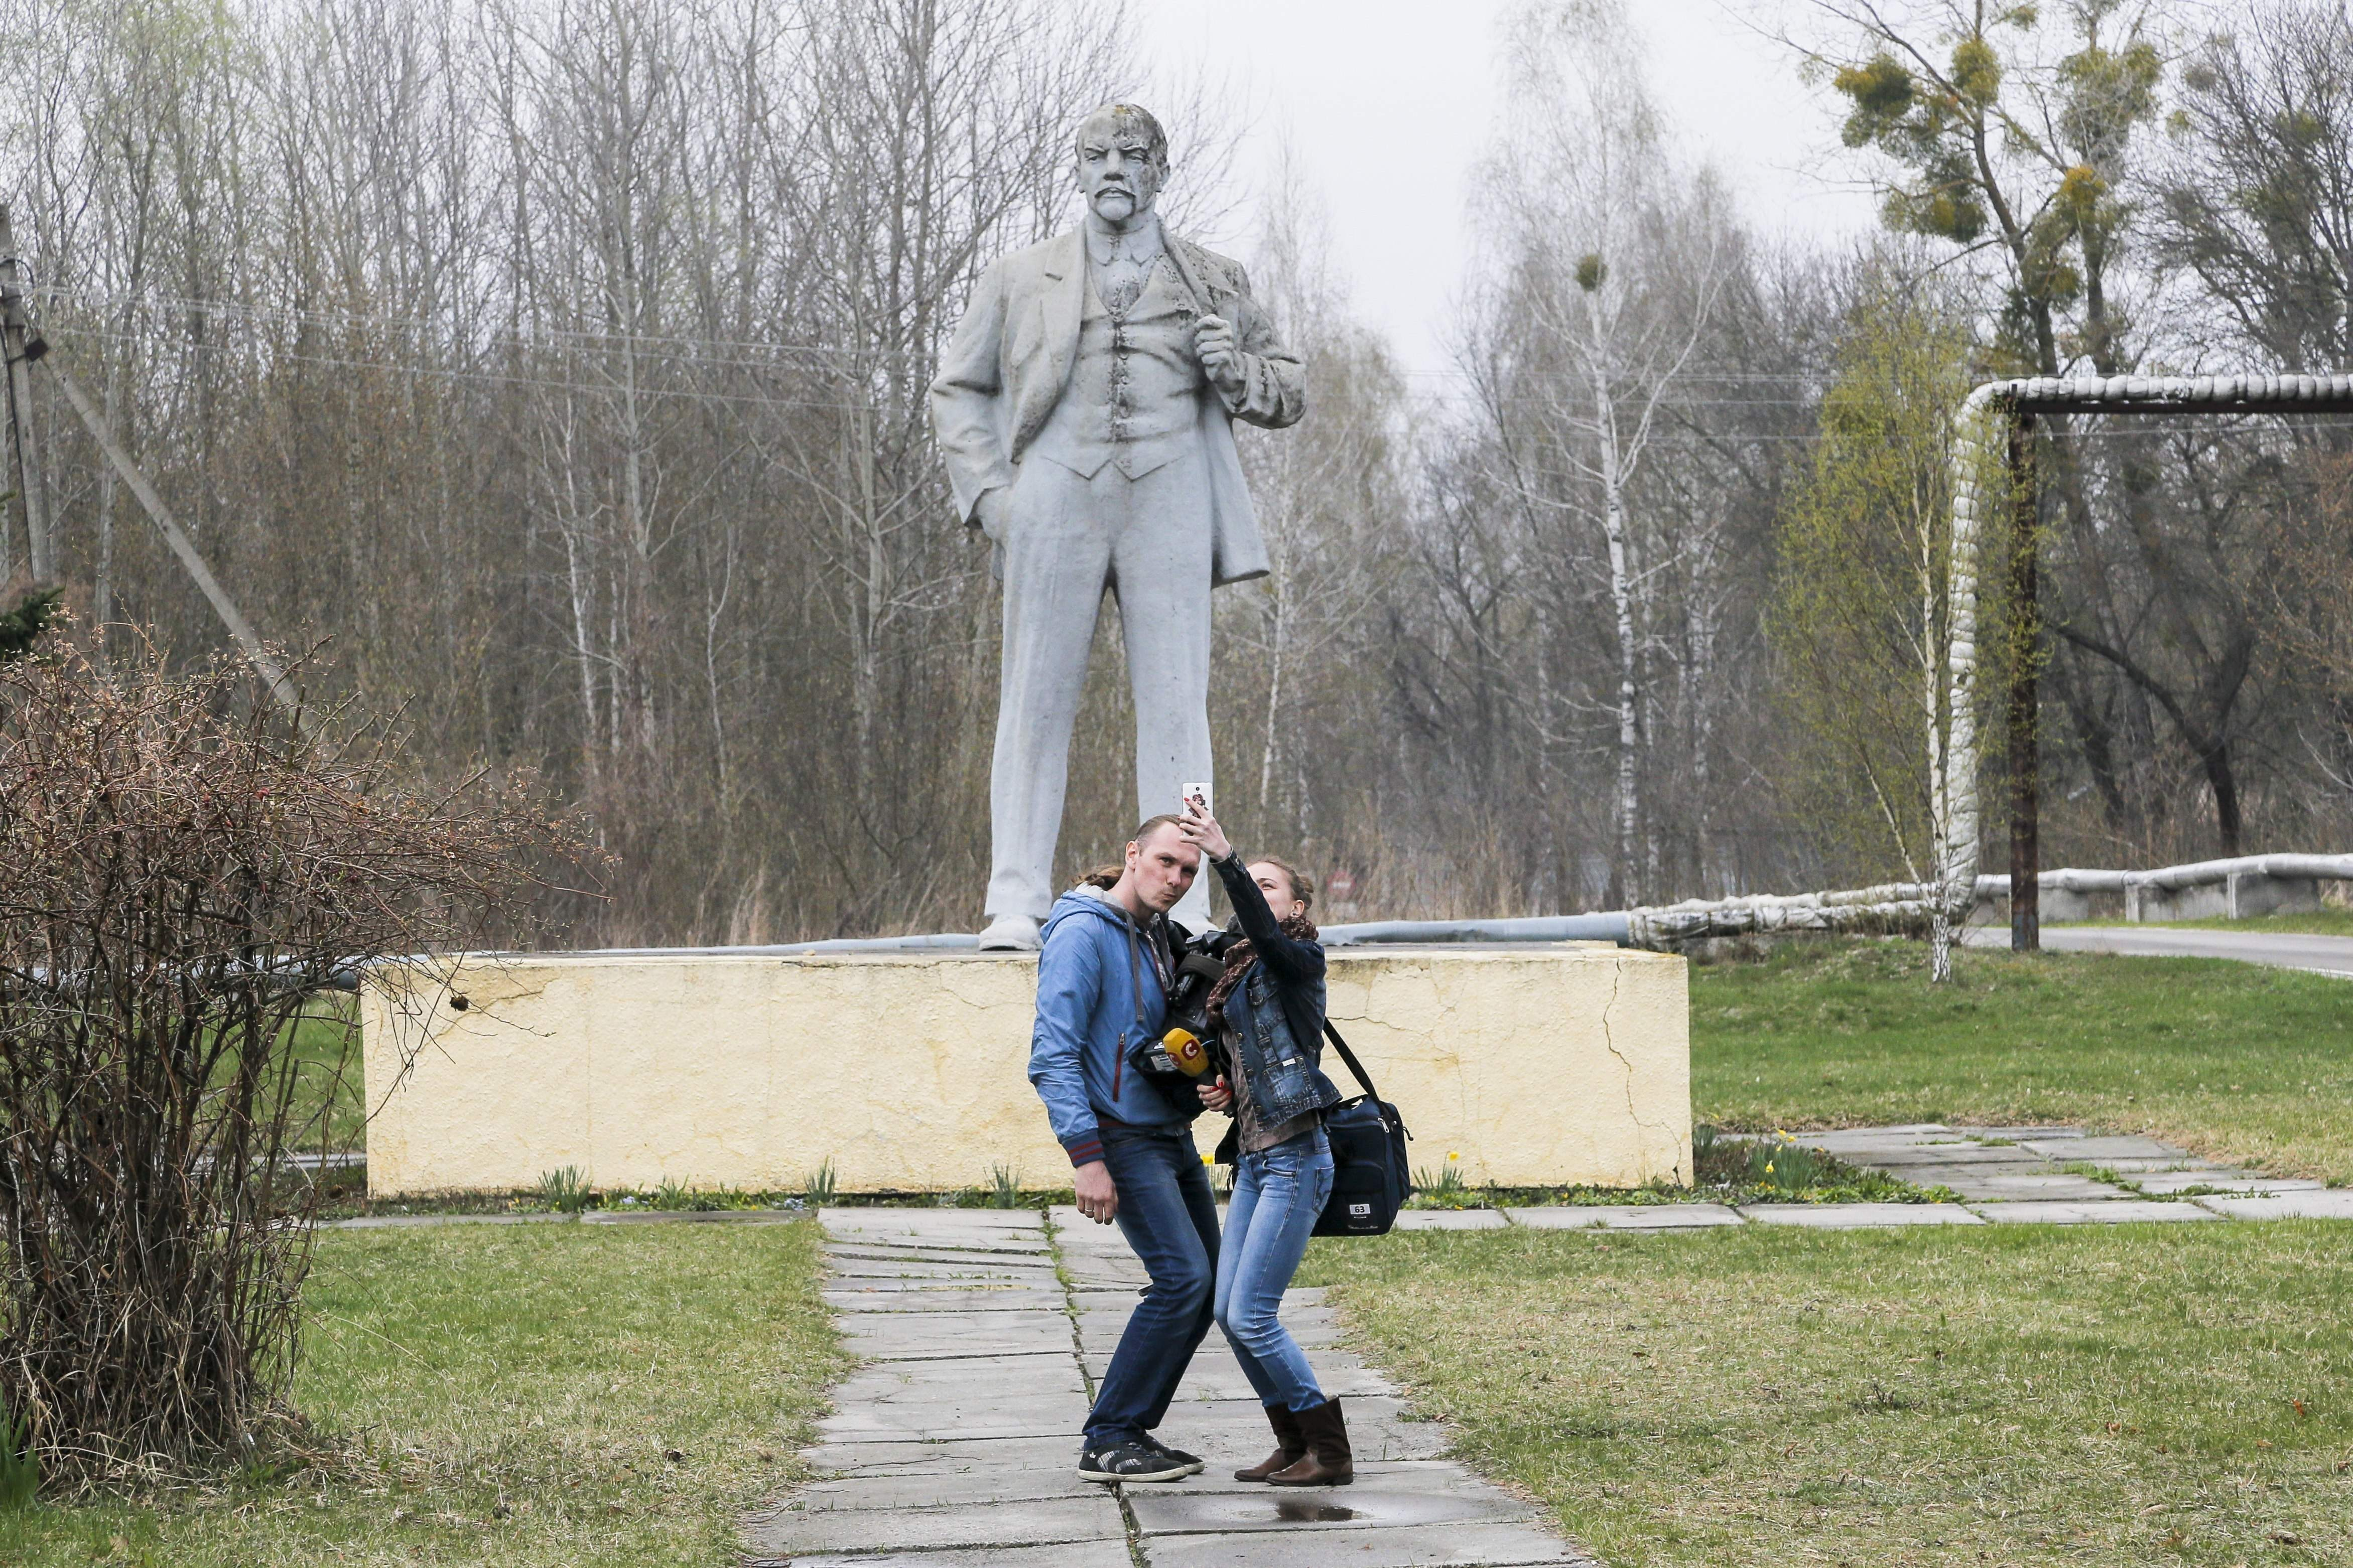 In this photo taken Wednesday, April 5, 2017, journalists take a selfie in front of the monument of Soviet state founder Vladimir Lenin in Chernobyl, Ukraine. April 26 marks the 31st anniversary of the Chernobyl nuclear disaster. A reactor at the Chernobyl nuclear power plant exploded on April 26, 1986, leading to an explosion and the subsequent fire spewed a radioactive plume over much of northern Europe. THE ASSOCIATED PRESS